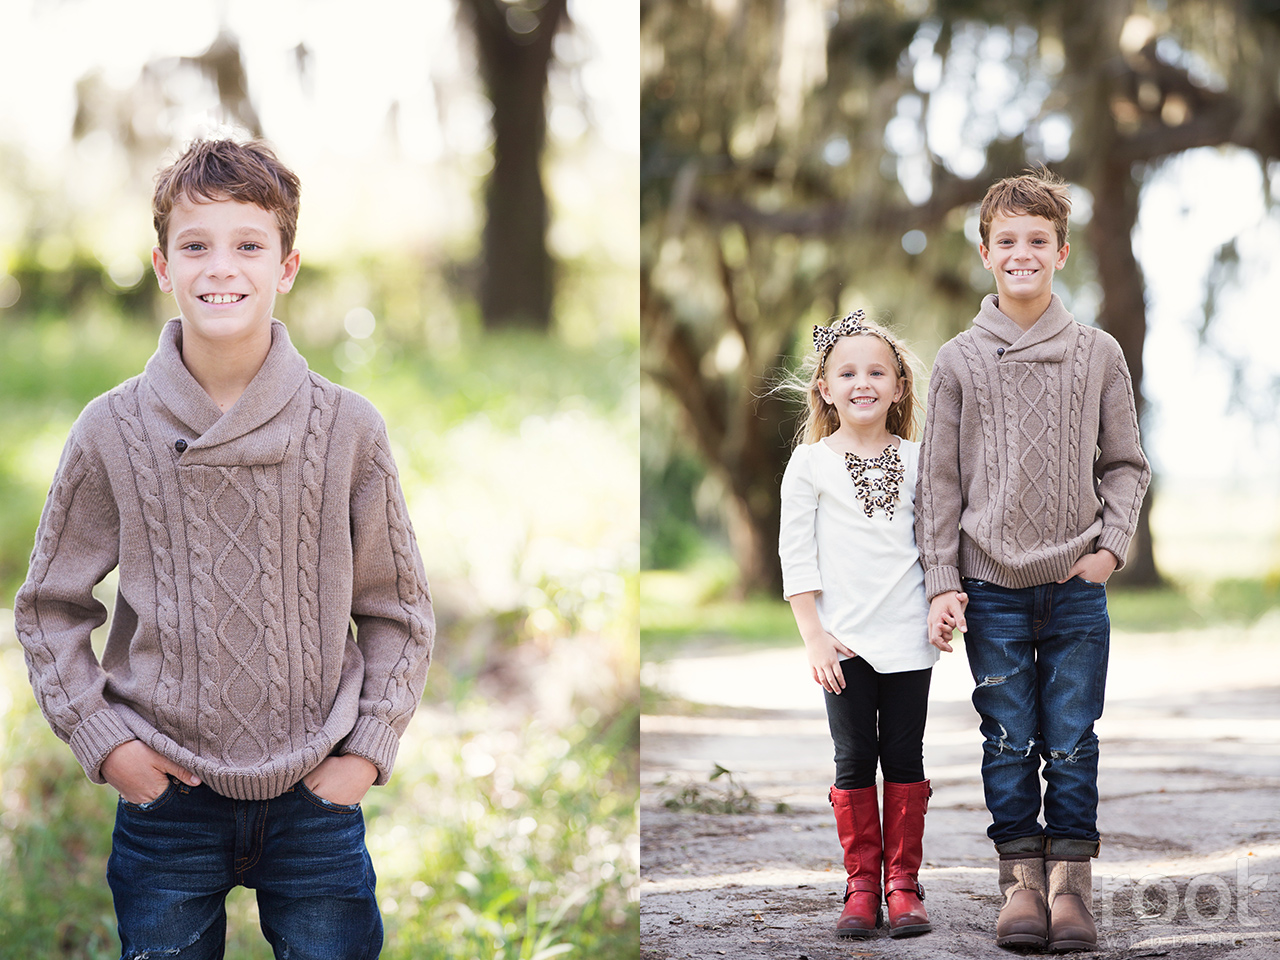 Winter Garden Family Portrait Session 07